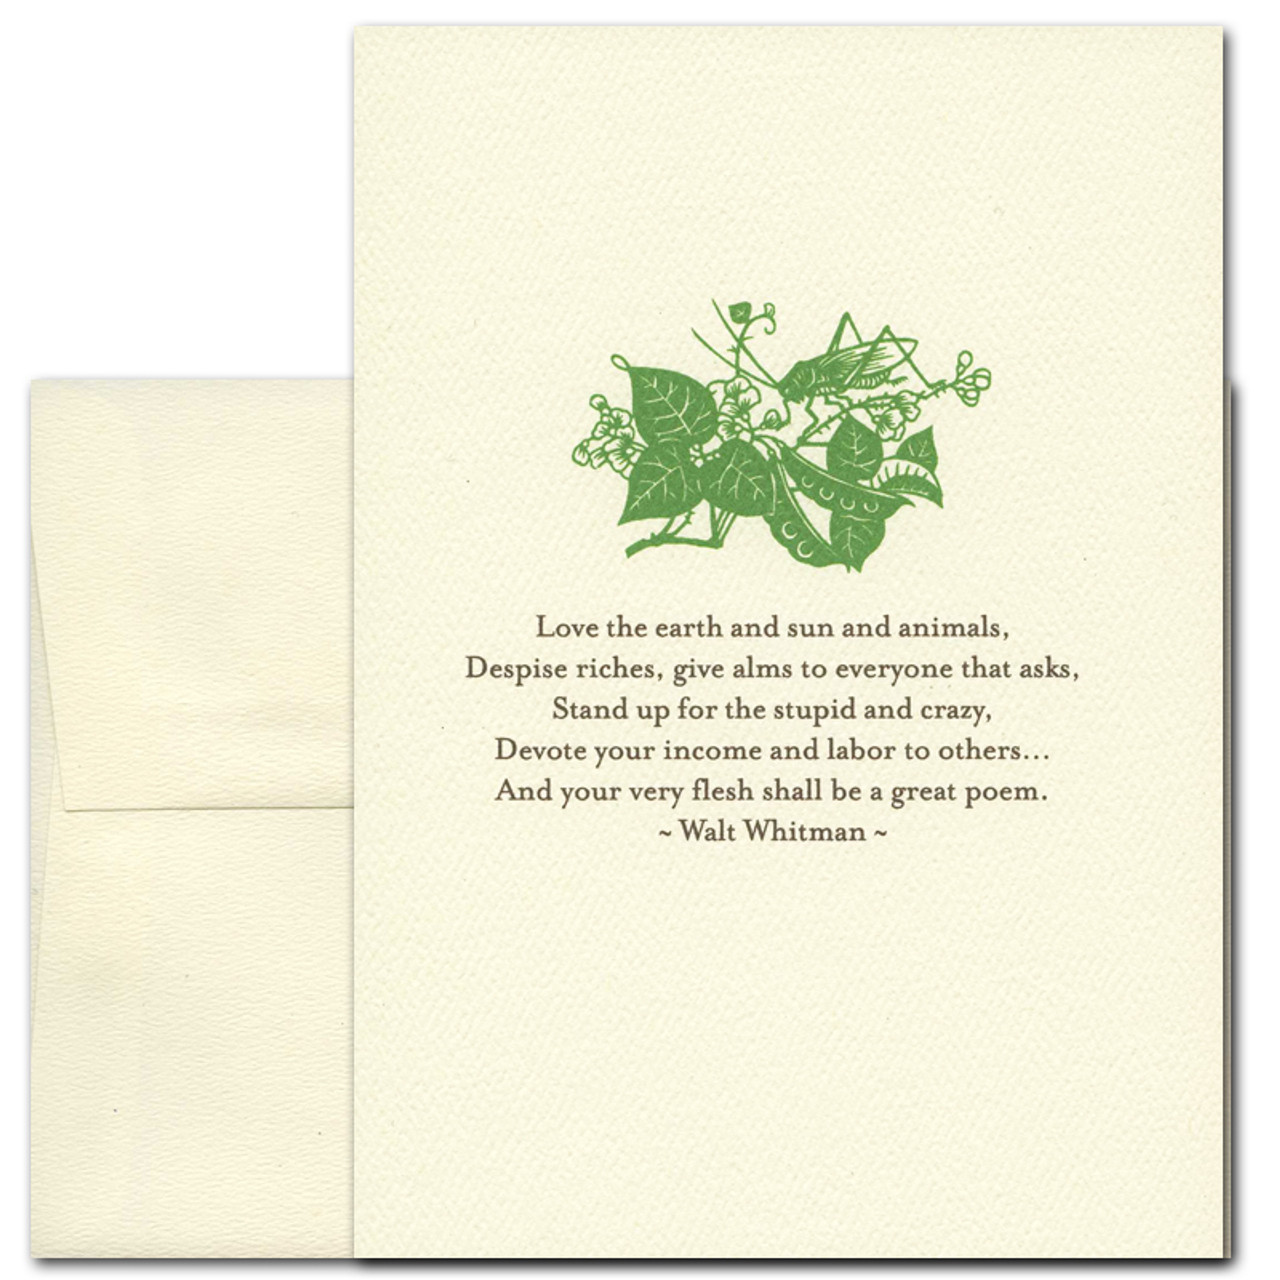 "Quotation Cards ""Great Poem: Whitman"" Cover shows a green vintage style drawing of a cricket on a plant with a quote by Walt Whitman that reads: ""Love the earth and sun and animals, despise riches, give alms to everyone that asks, stand up for the stupid and crazy, devote your income and labor to others. . . and your very flesh shall be a great poem."""